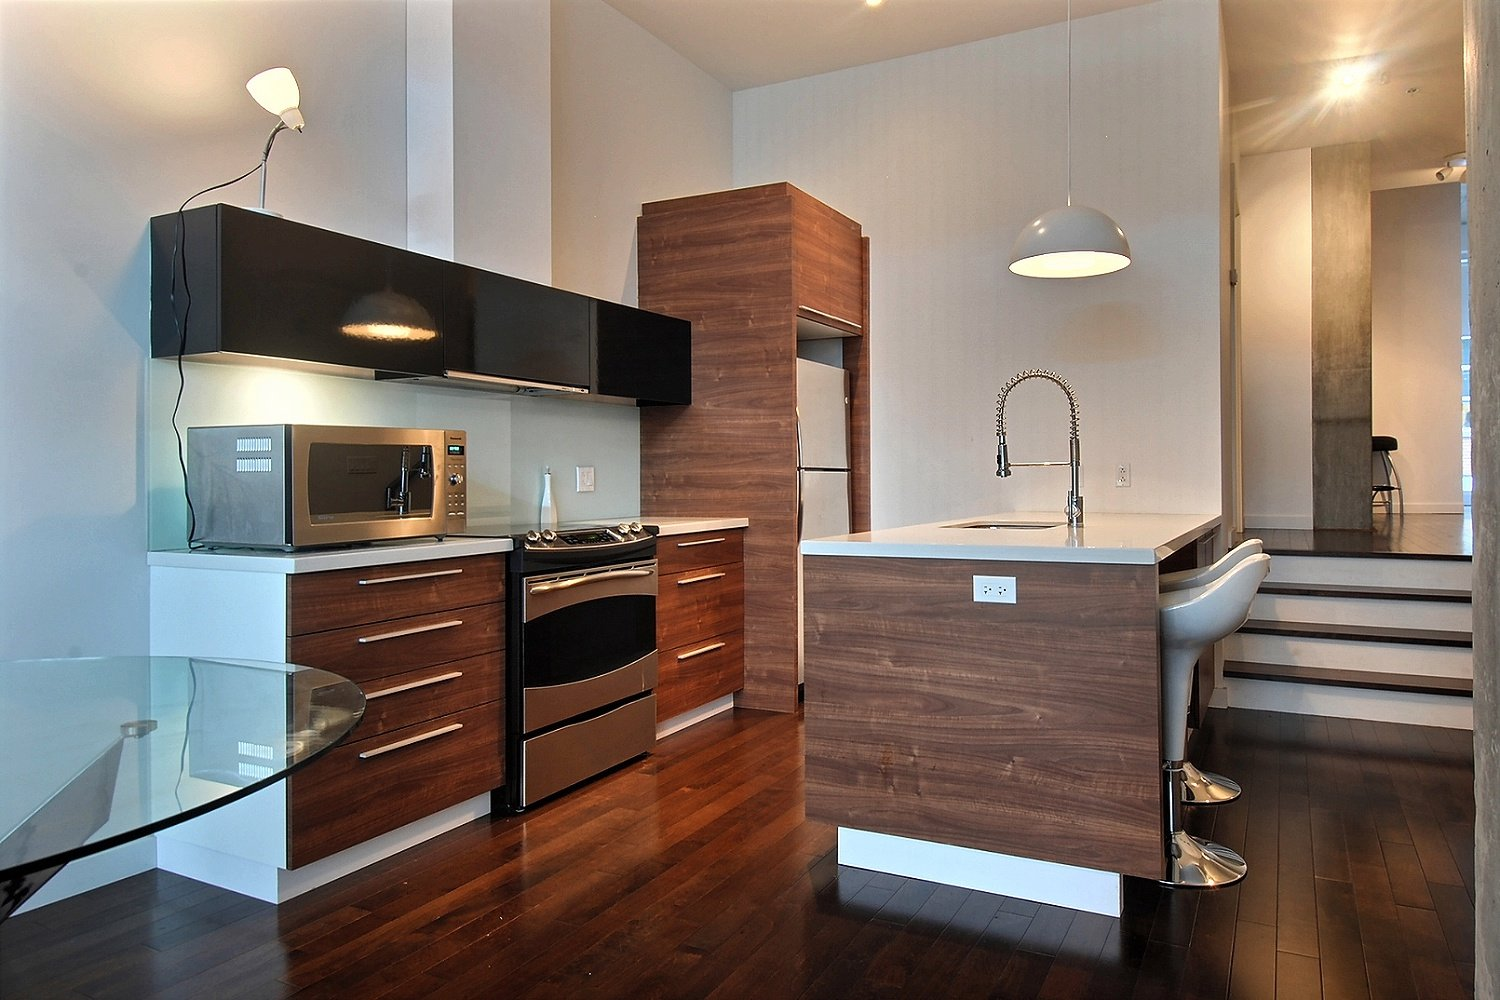 Chambre meuble a louer montreal for Meuble vieux montreal